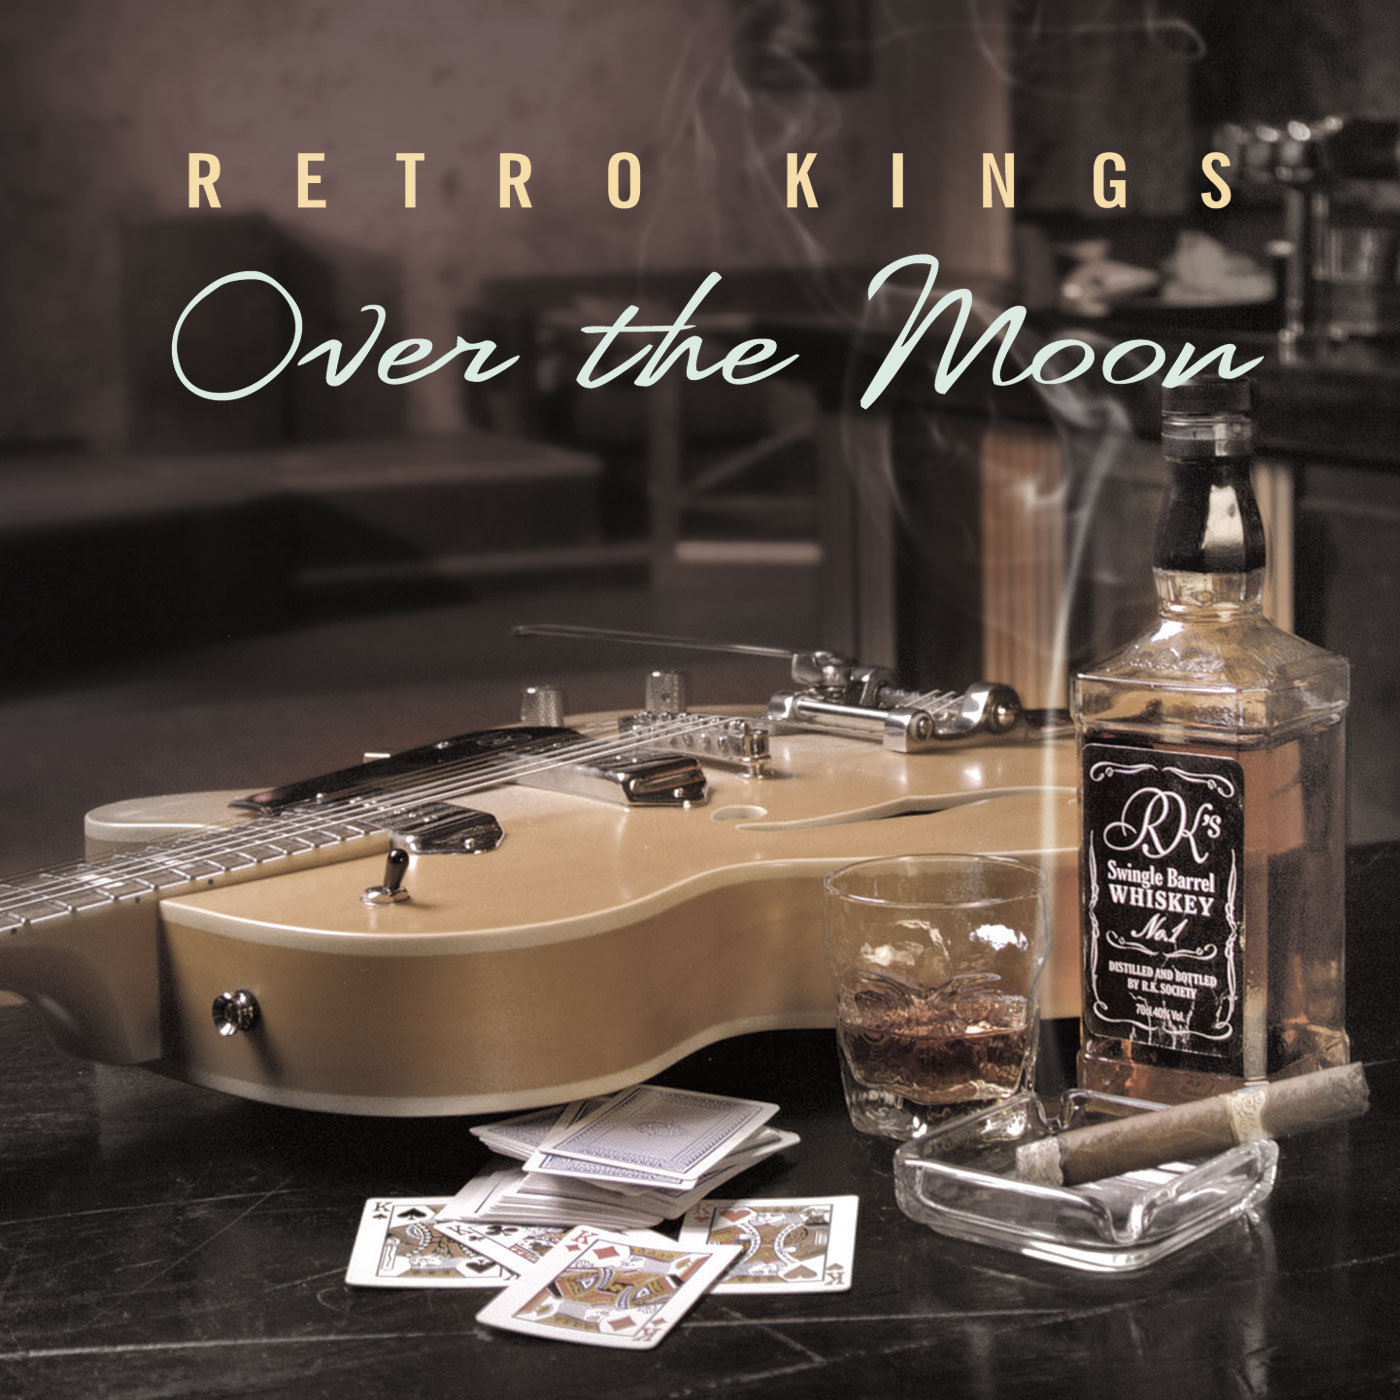 Retro Kings: Over The Moon